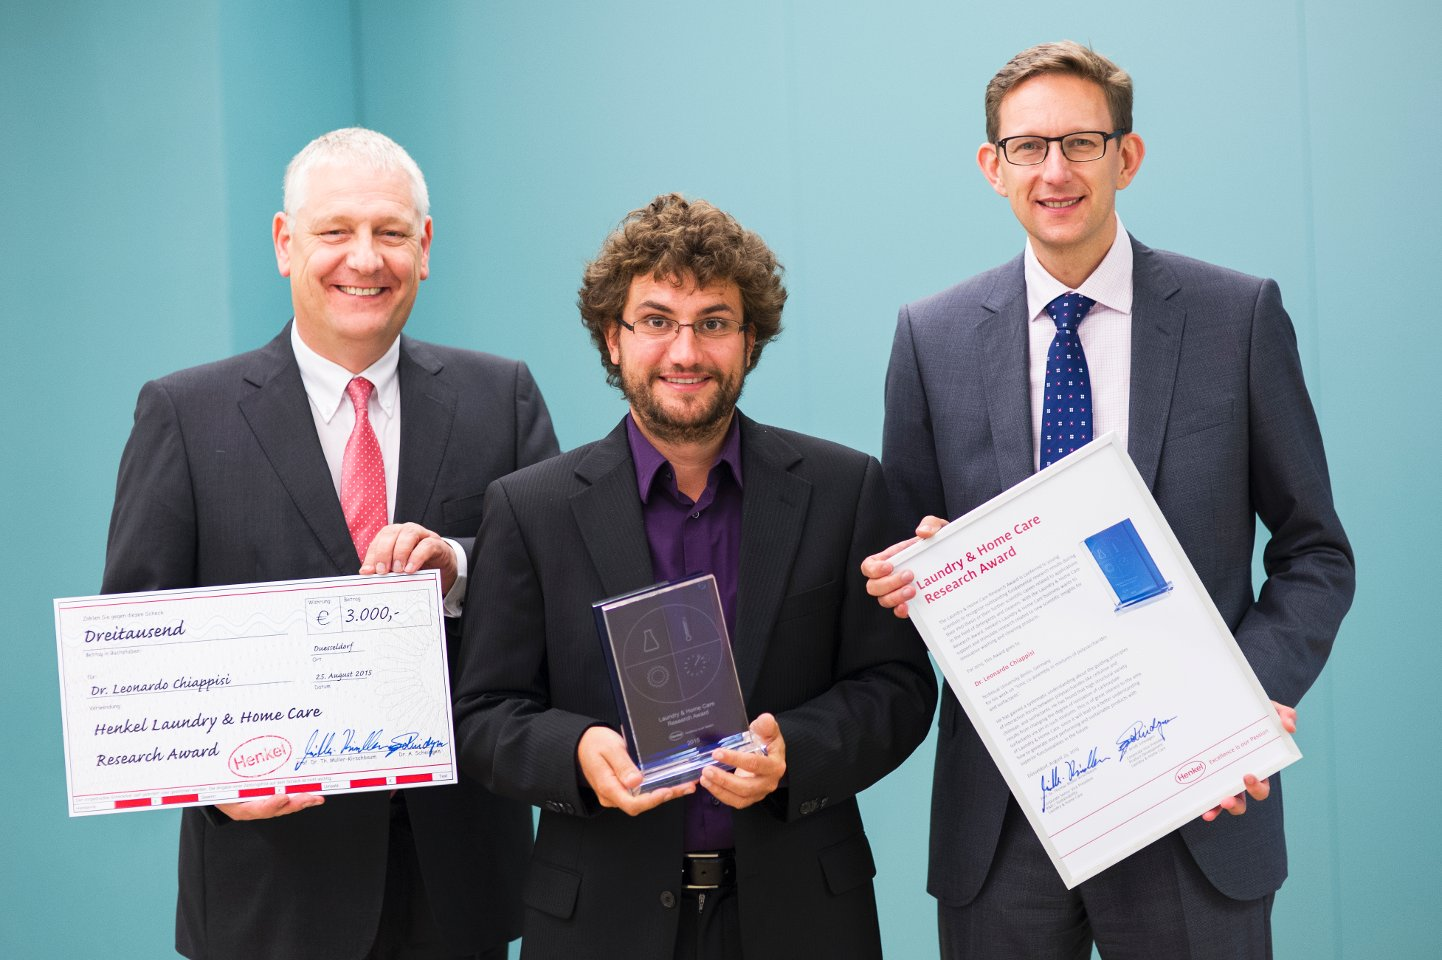 "Prof. Dr. Thomas Müller-Kirschbaum (left), Head of Global Research and Development at the Laundry & Home Care business unit, and Dr. Michael Dreja, Head of Global Research at Laundry & Home Care, present the ""Laundry & Home Care Research Award 2015"" to Dr. Leonardo Chiappisi (center)."